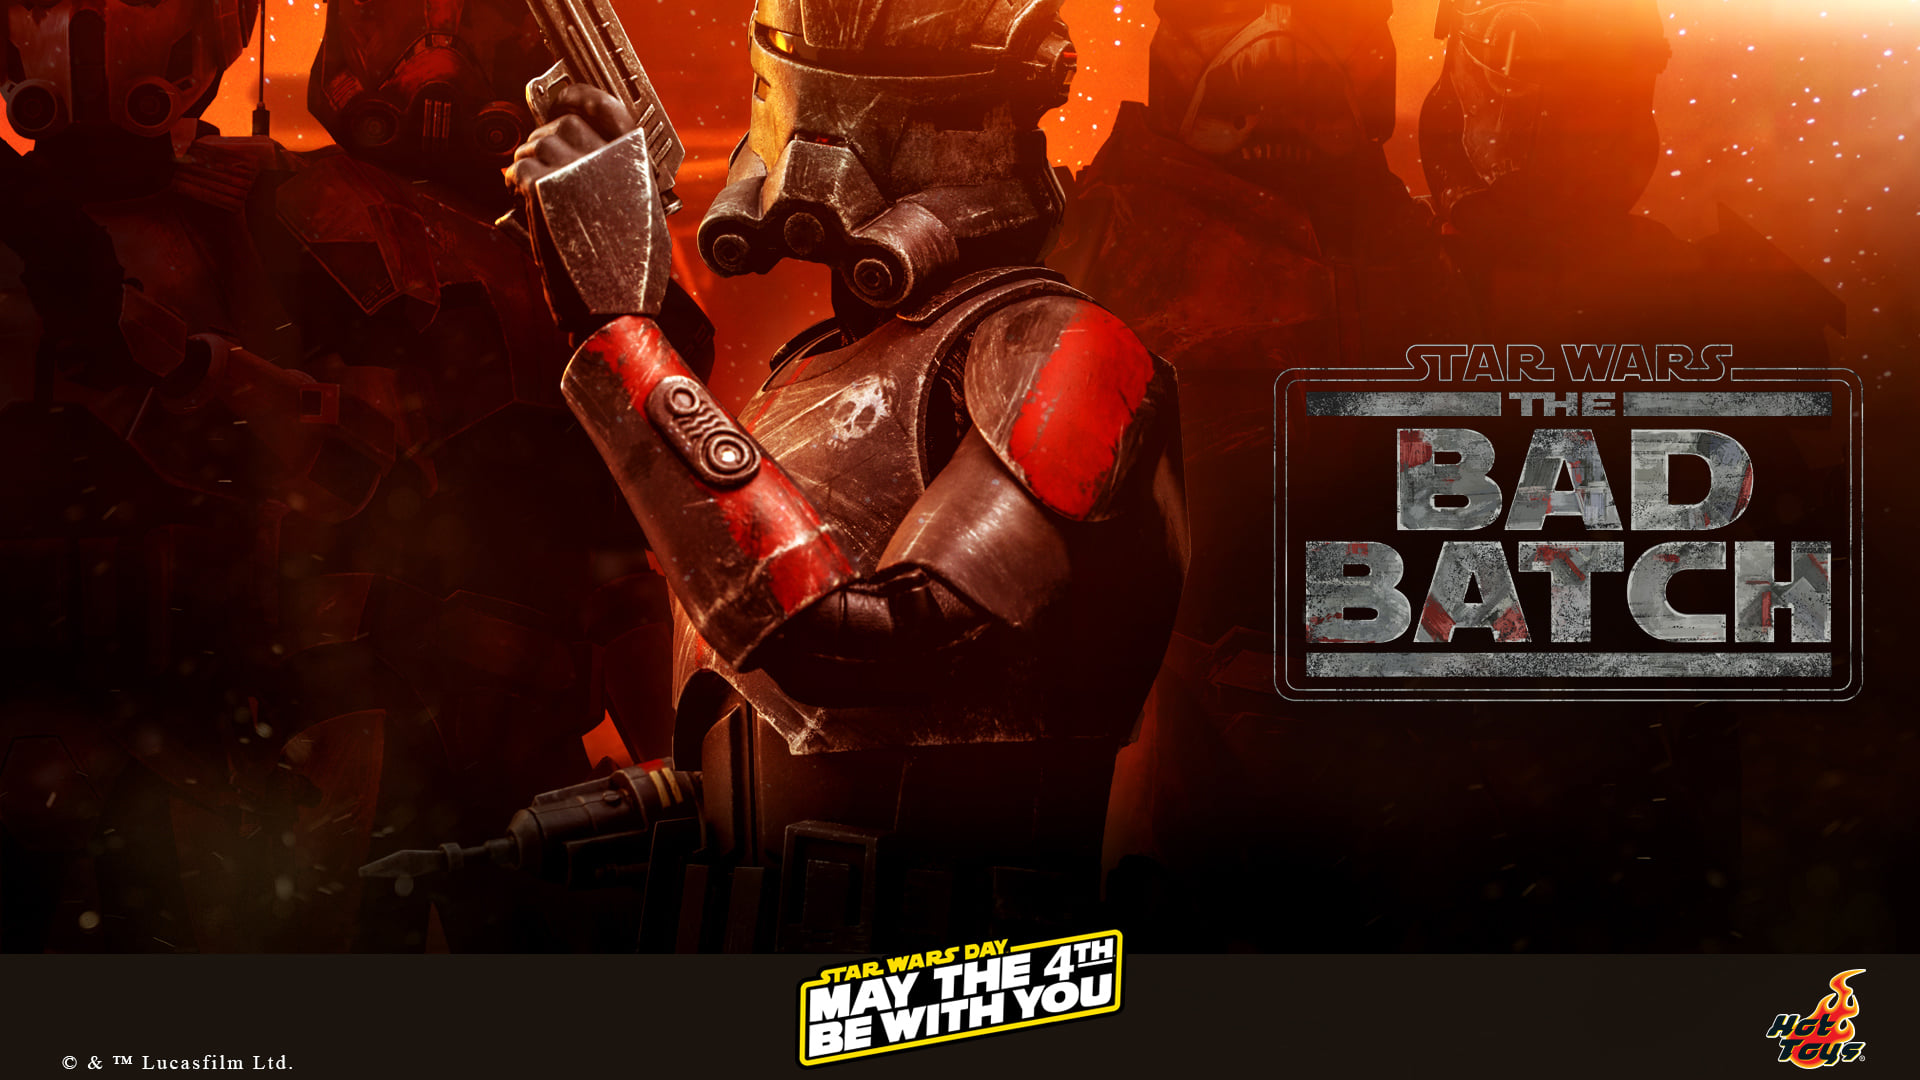 Hot-Toys-Bad-Batch-Preview.jpg